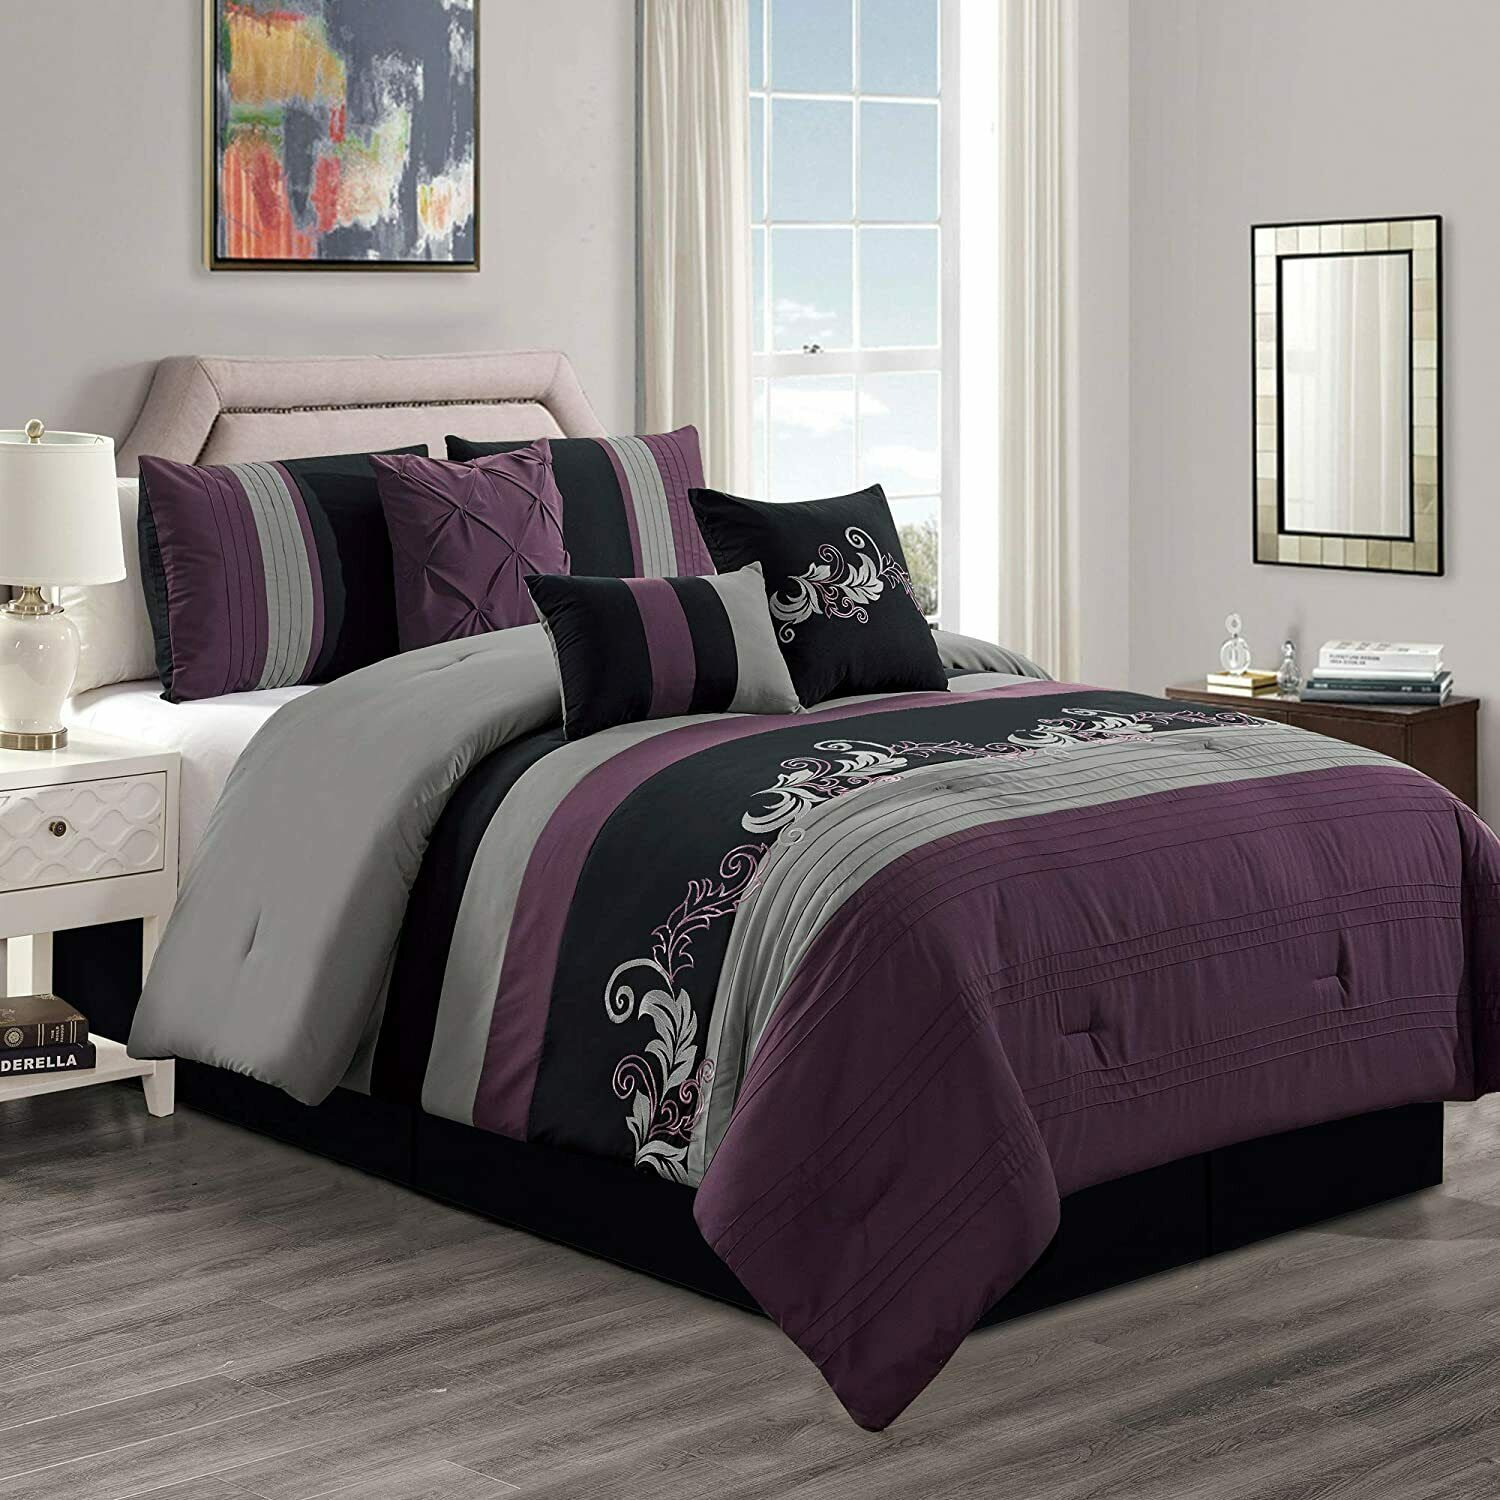 7 piece luxury purple gray black floral leaves scroll embroidery comforter set